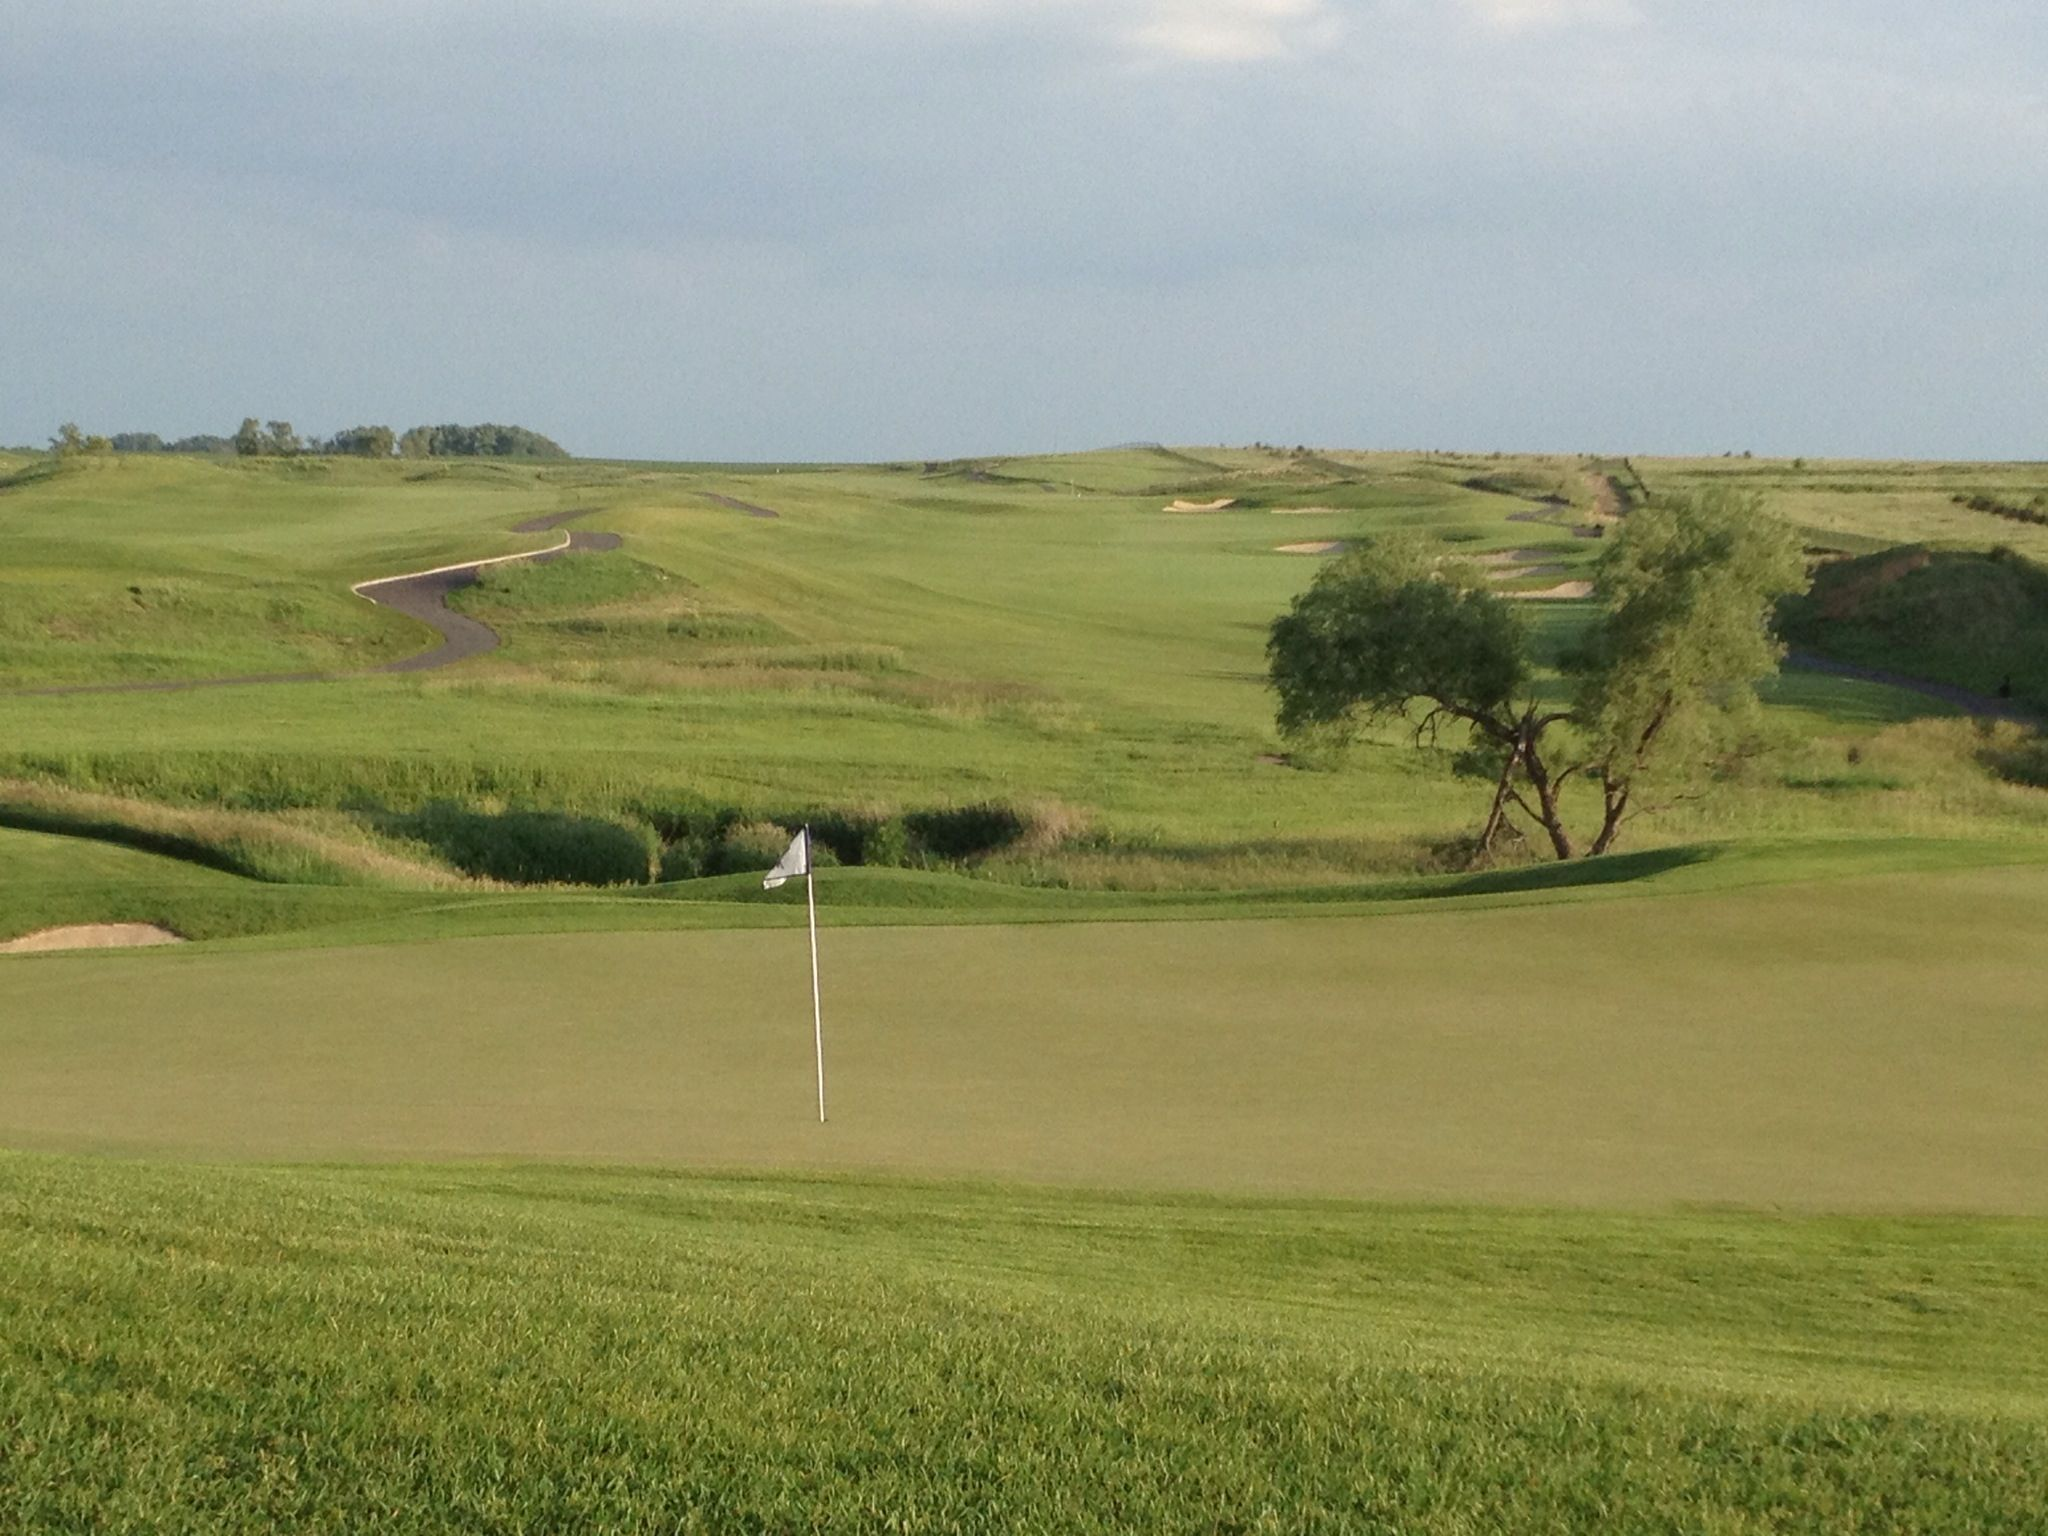 Dacotah Ridge Morton Mn Designed By Rees Jones The Open Doctor Great Course Golf Courses Courses Golf